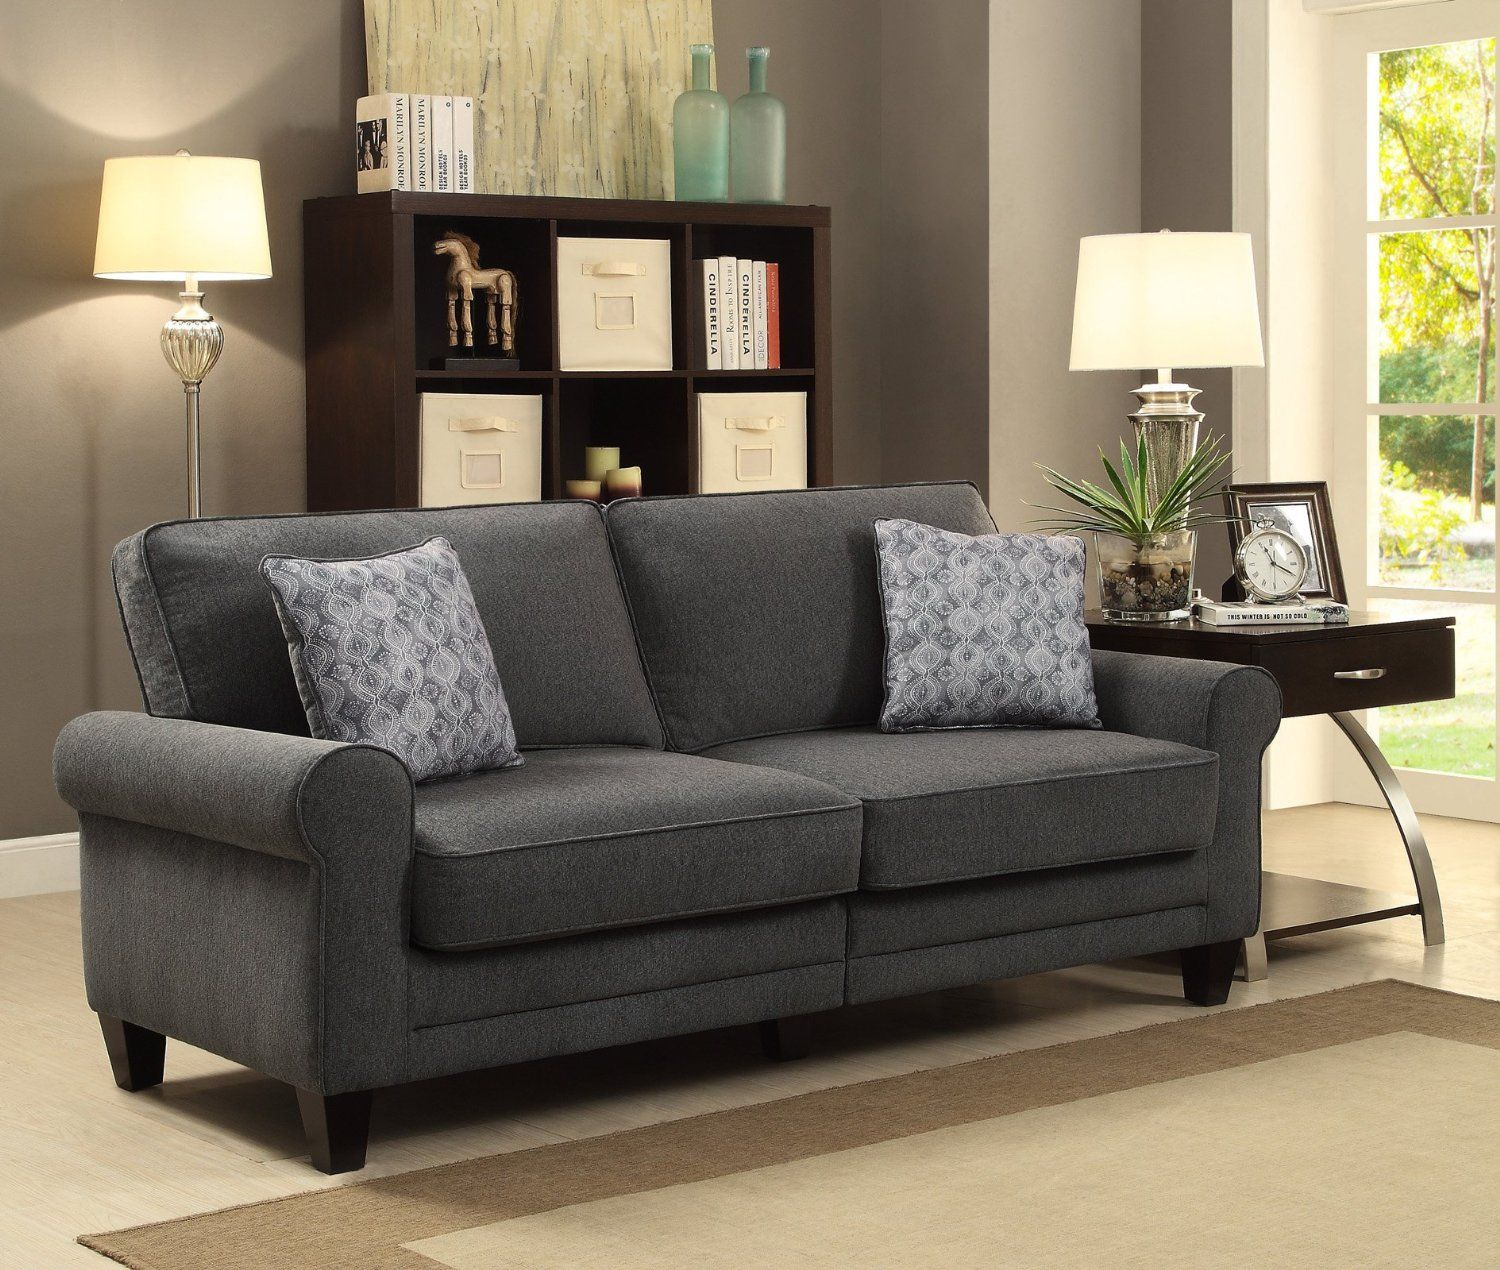 Serta at Home CR46222PB RTA Somerset Collection, 73-Inch Fabric ...